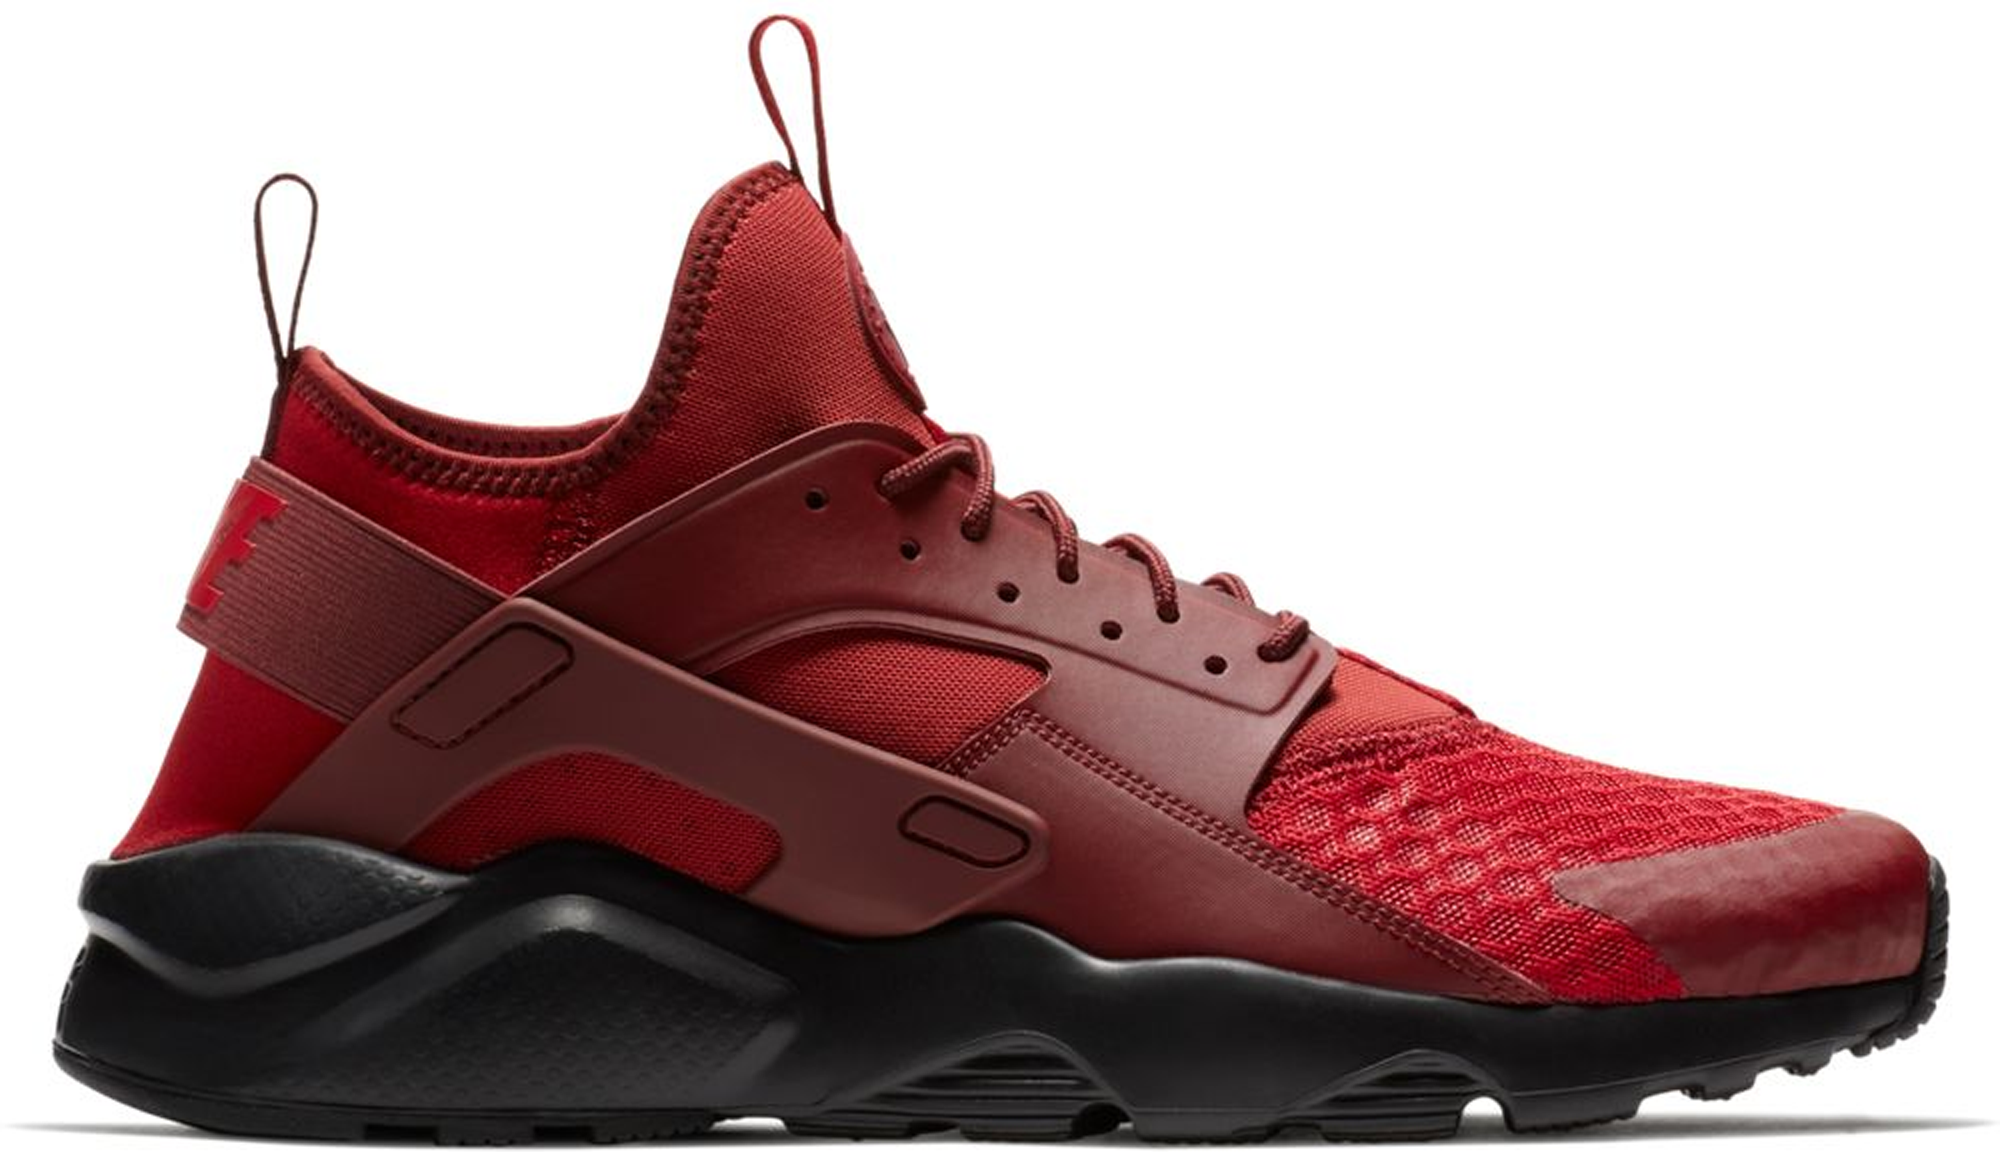 cf52542048 ... discount code for air huarache run ultra tough red 819685 604 a2787  1636f